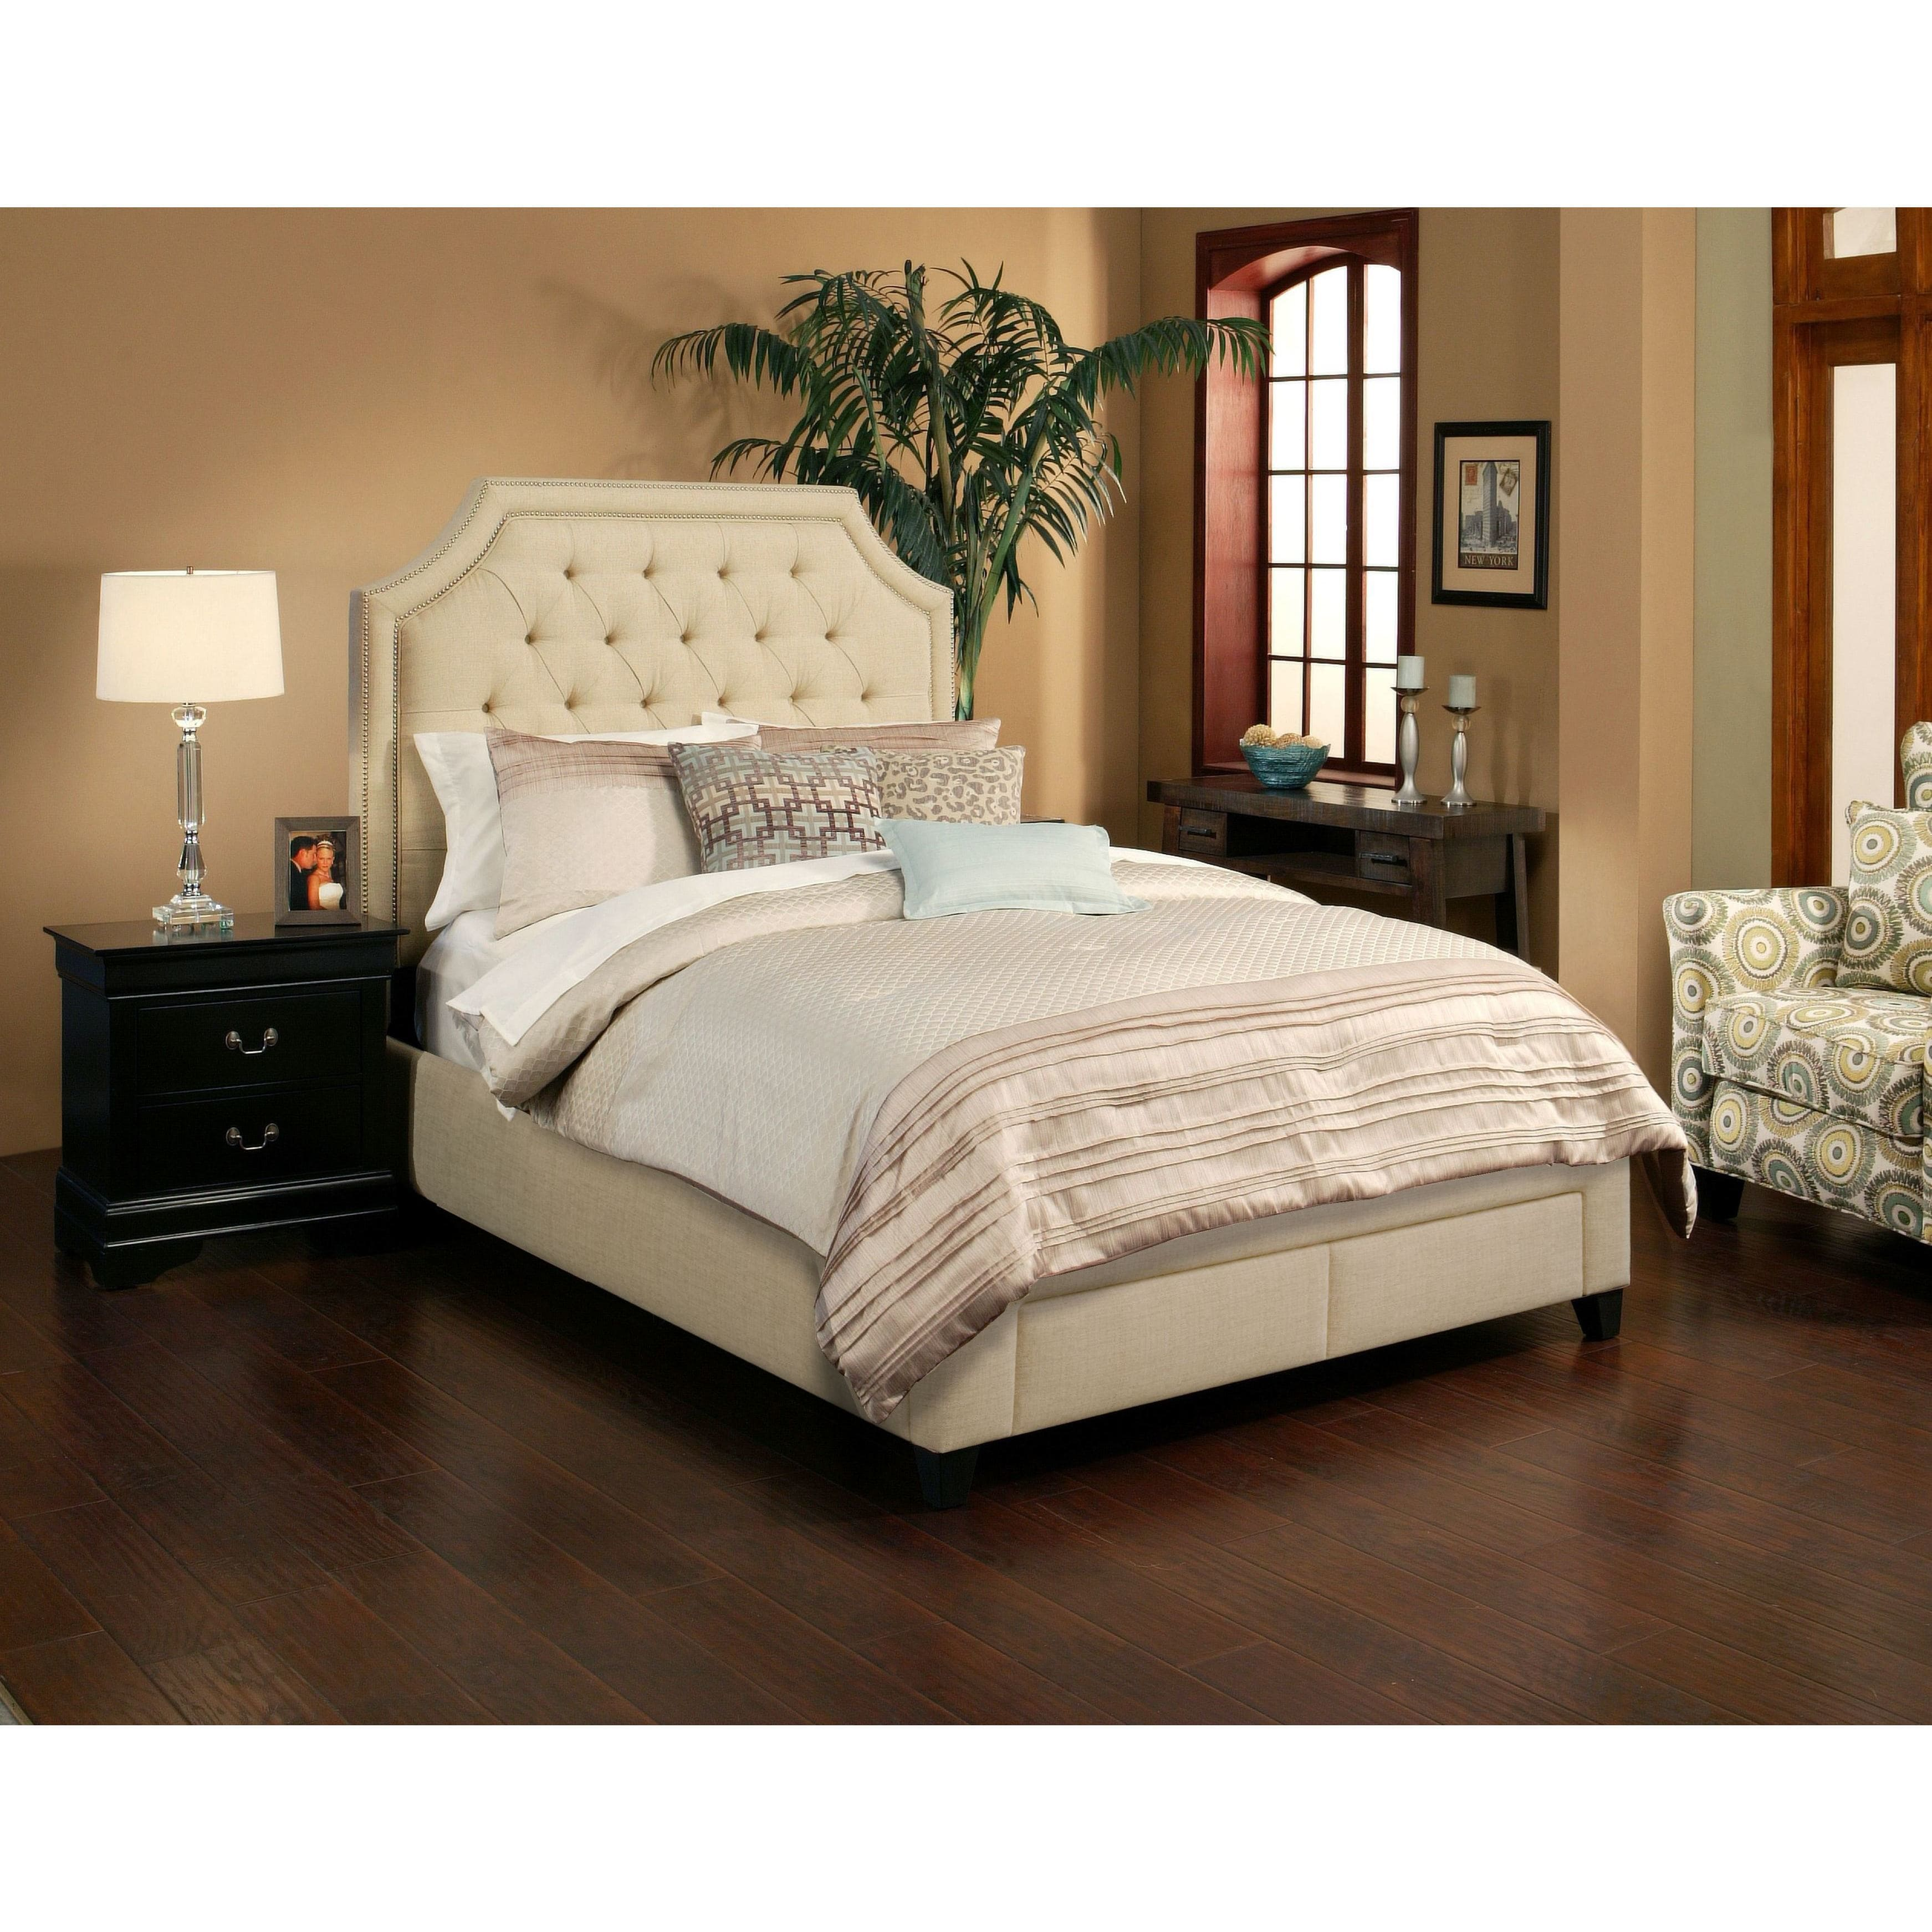 SeaHawk Designs 72501 Audrey Wheat Two Drawer Storage Bed Base - Eastern King